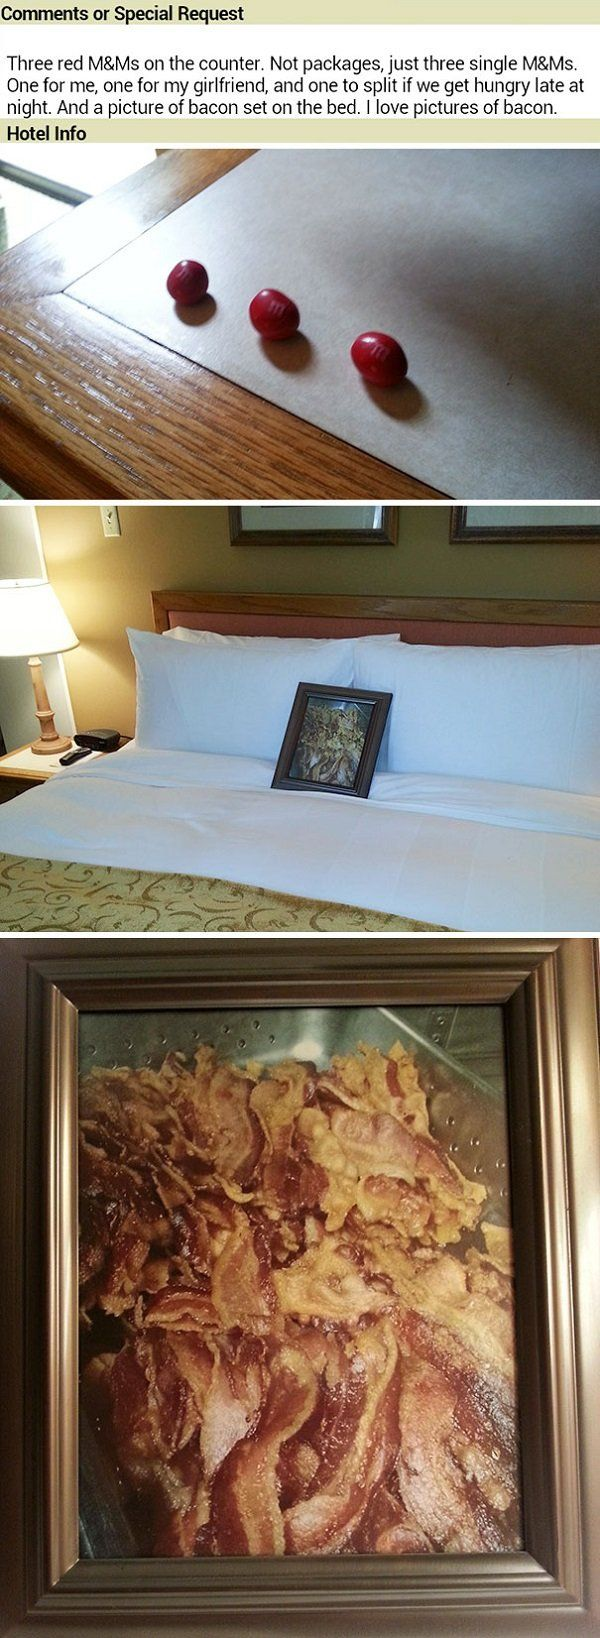 Hotels That Take Their Requests Seriously (17 pics)